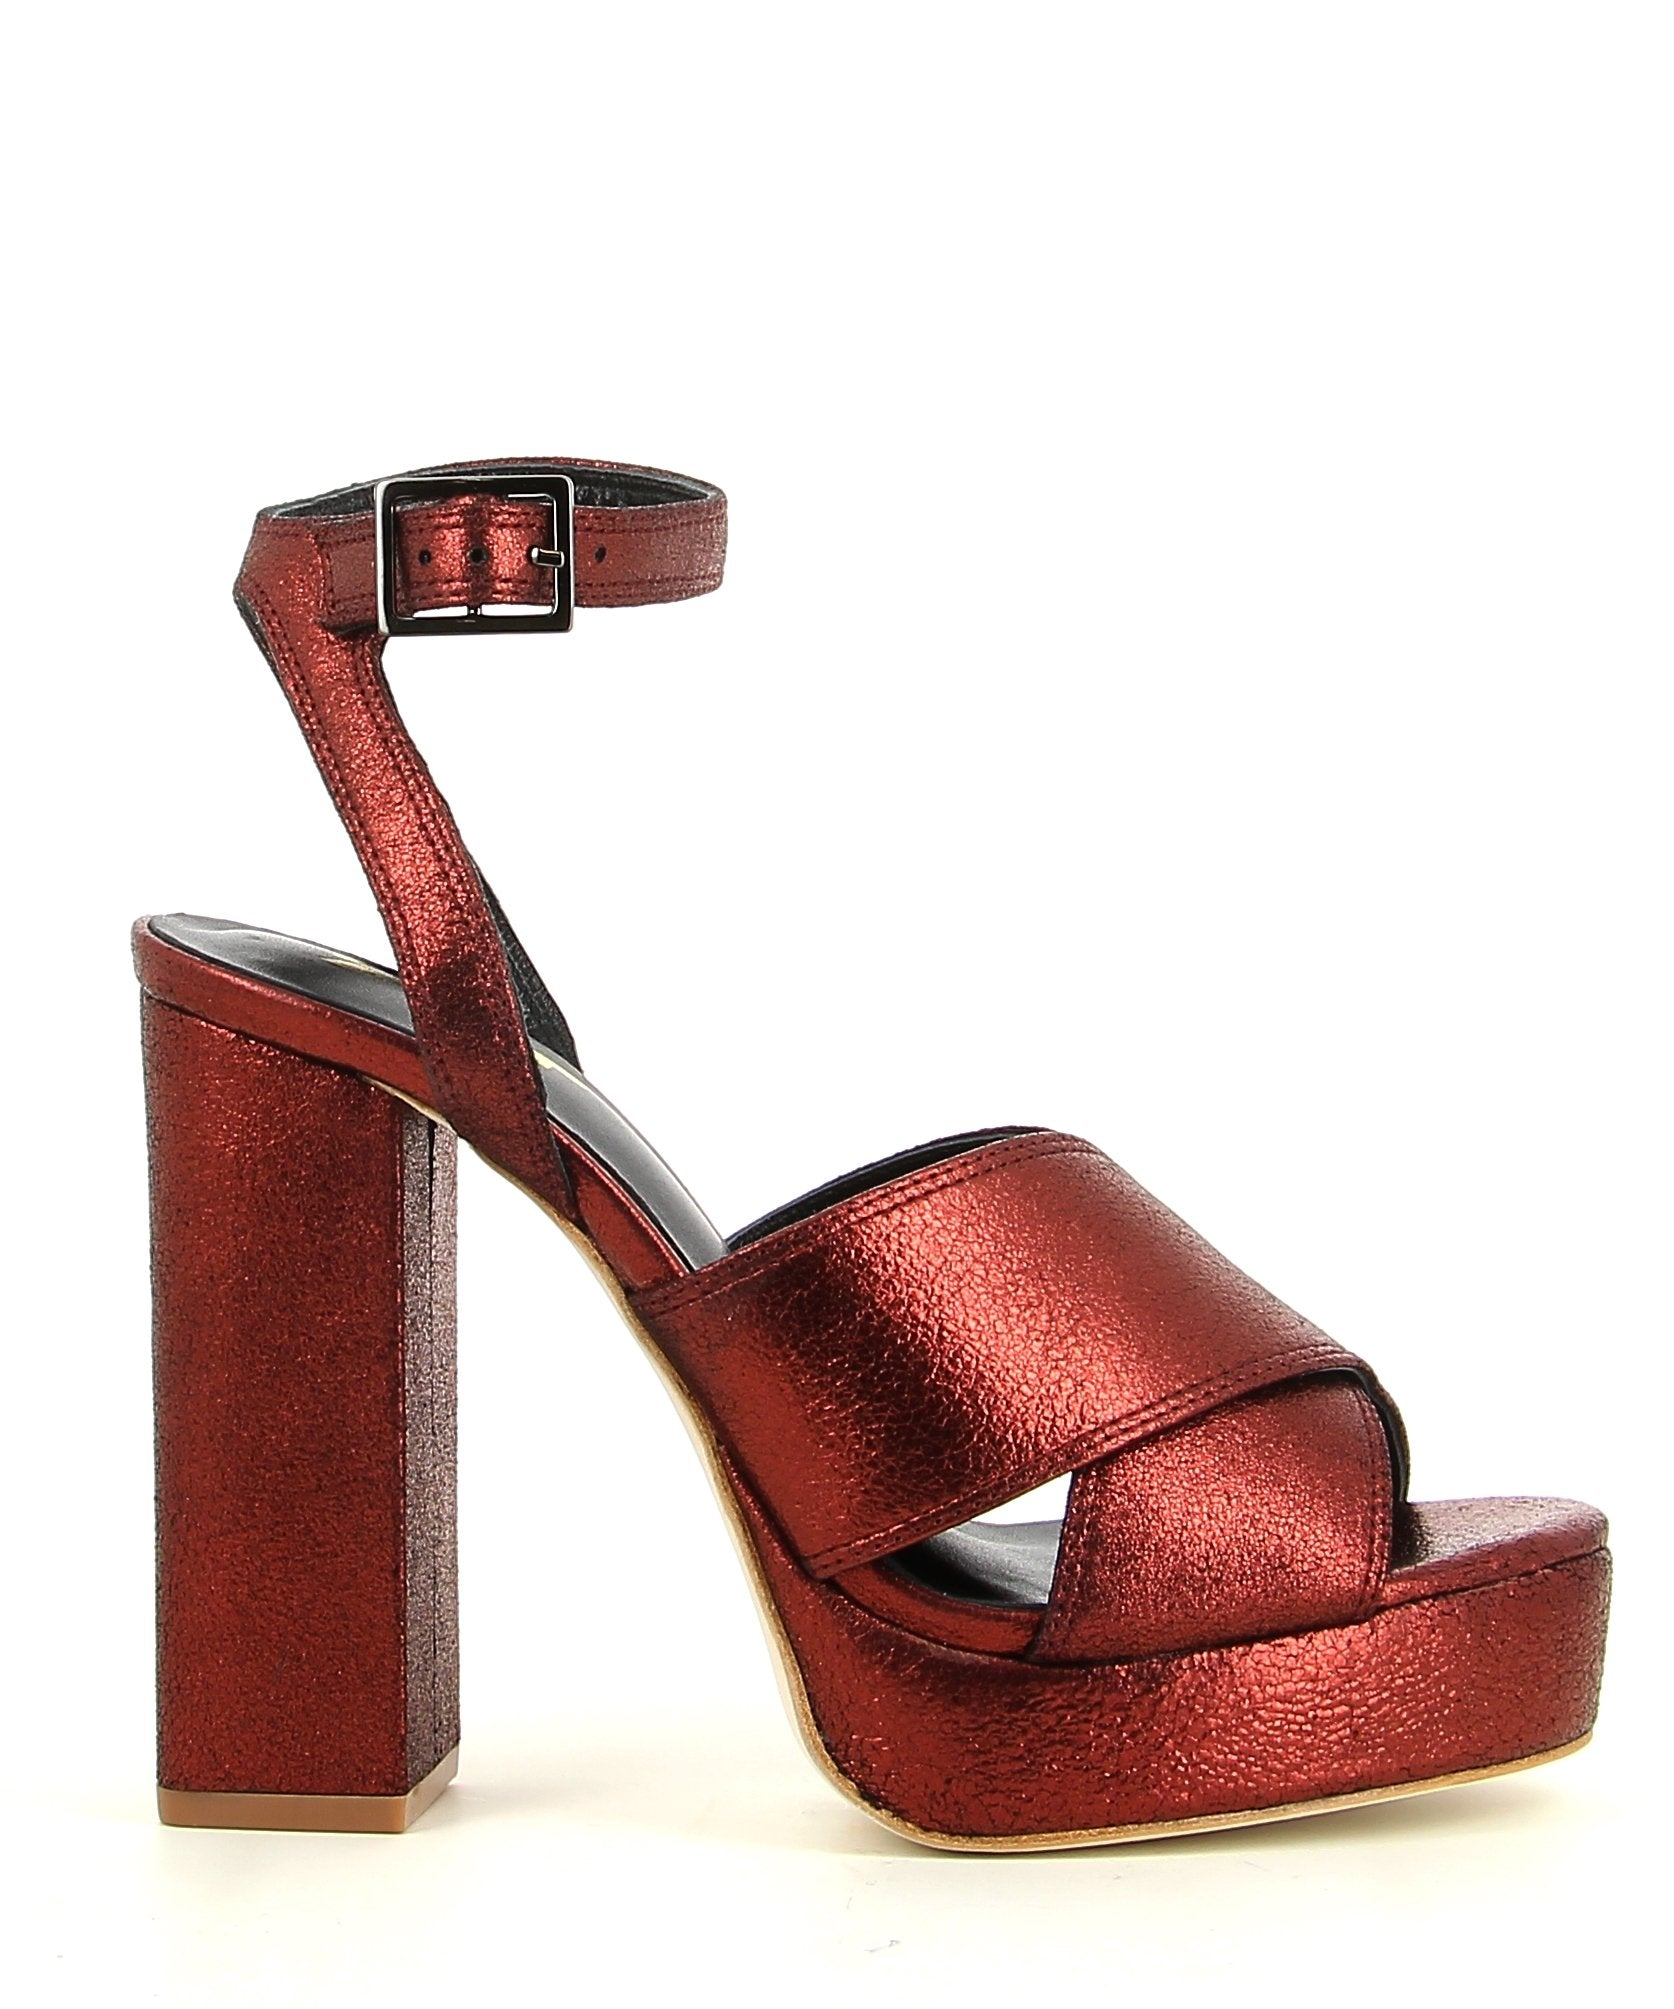 Metallic Red Dust Leather Platform Sandal featuring an ankle strap with a buckle fastening, and a round open toe. Made by ZOMP.